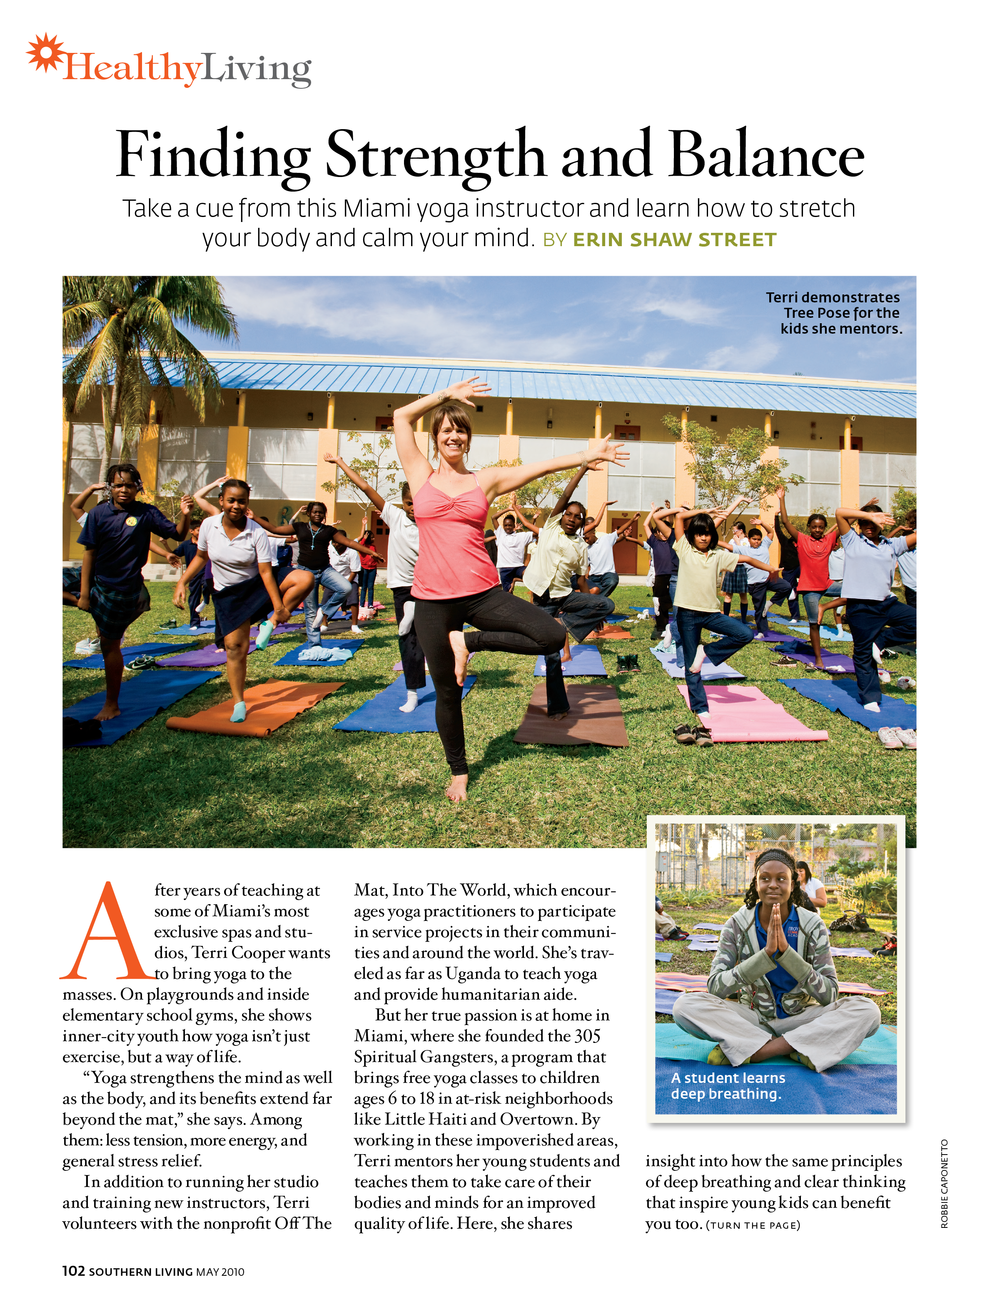 Healthy Living: Finding Strength & Balance